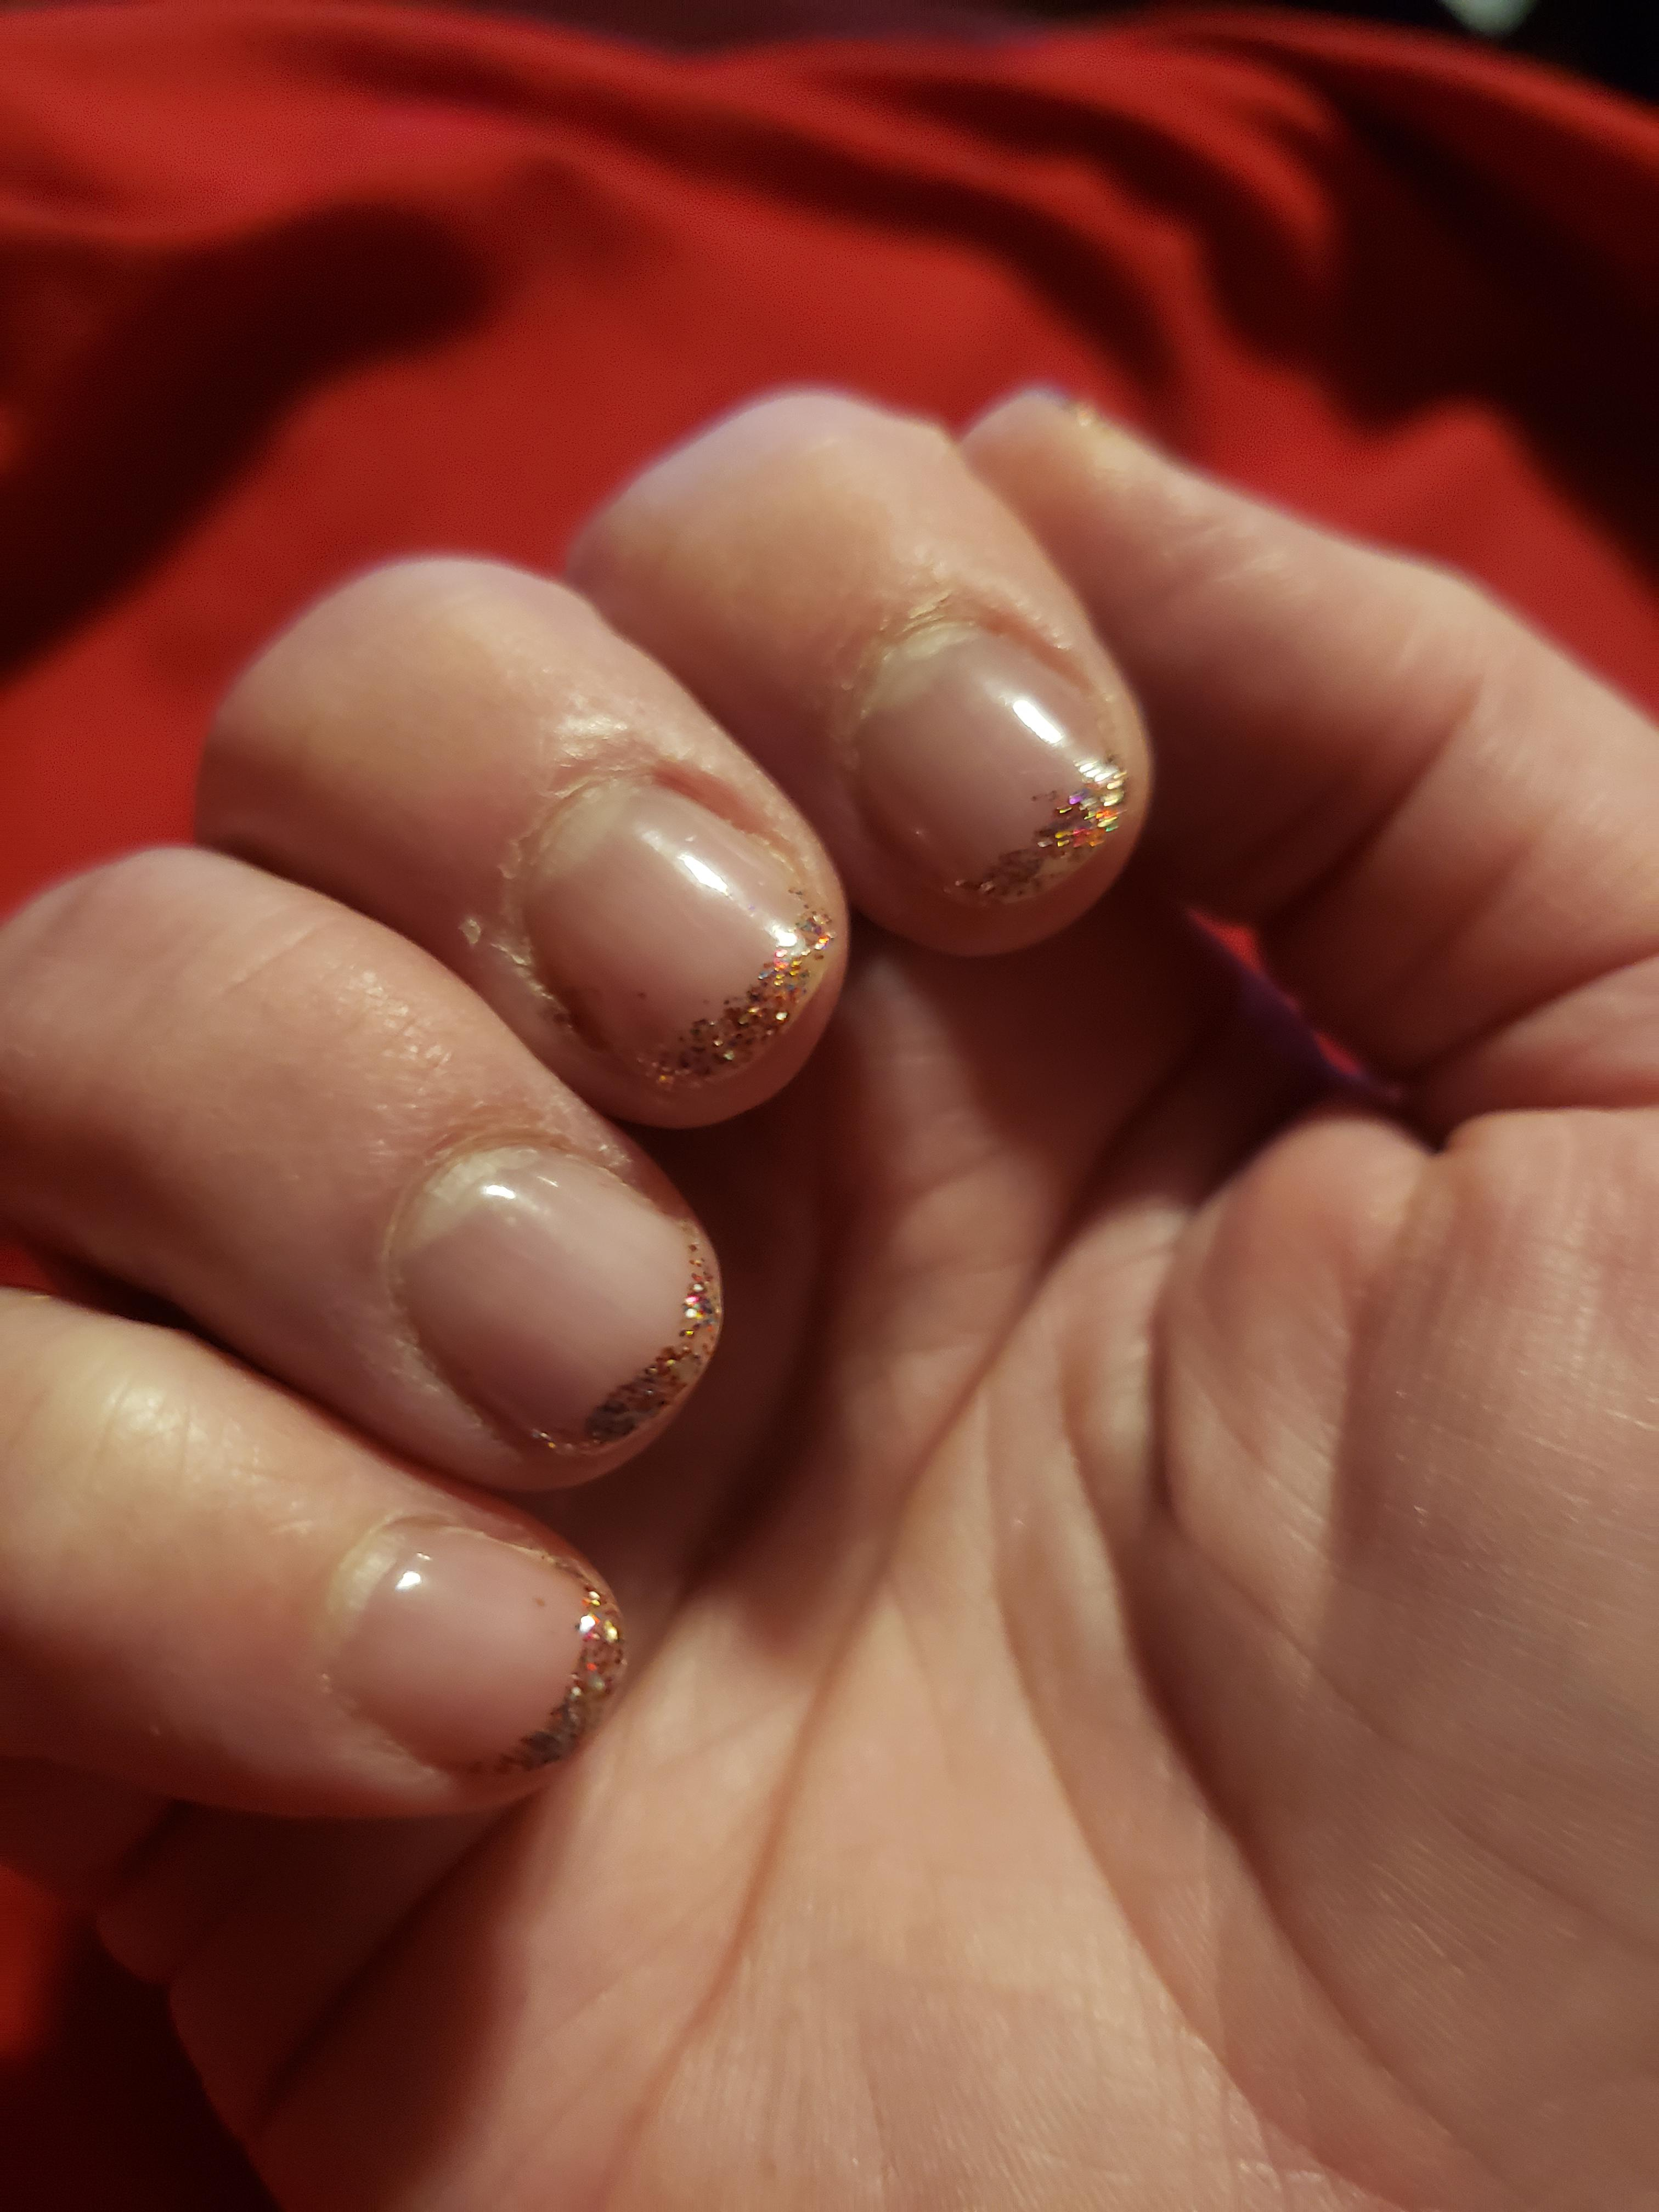 Had To Remove My Acrylic D T Surgery Natural Nails With Clear